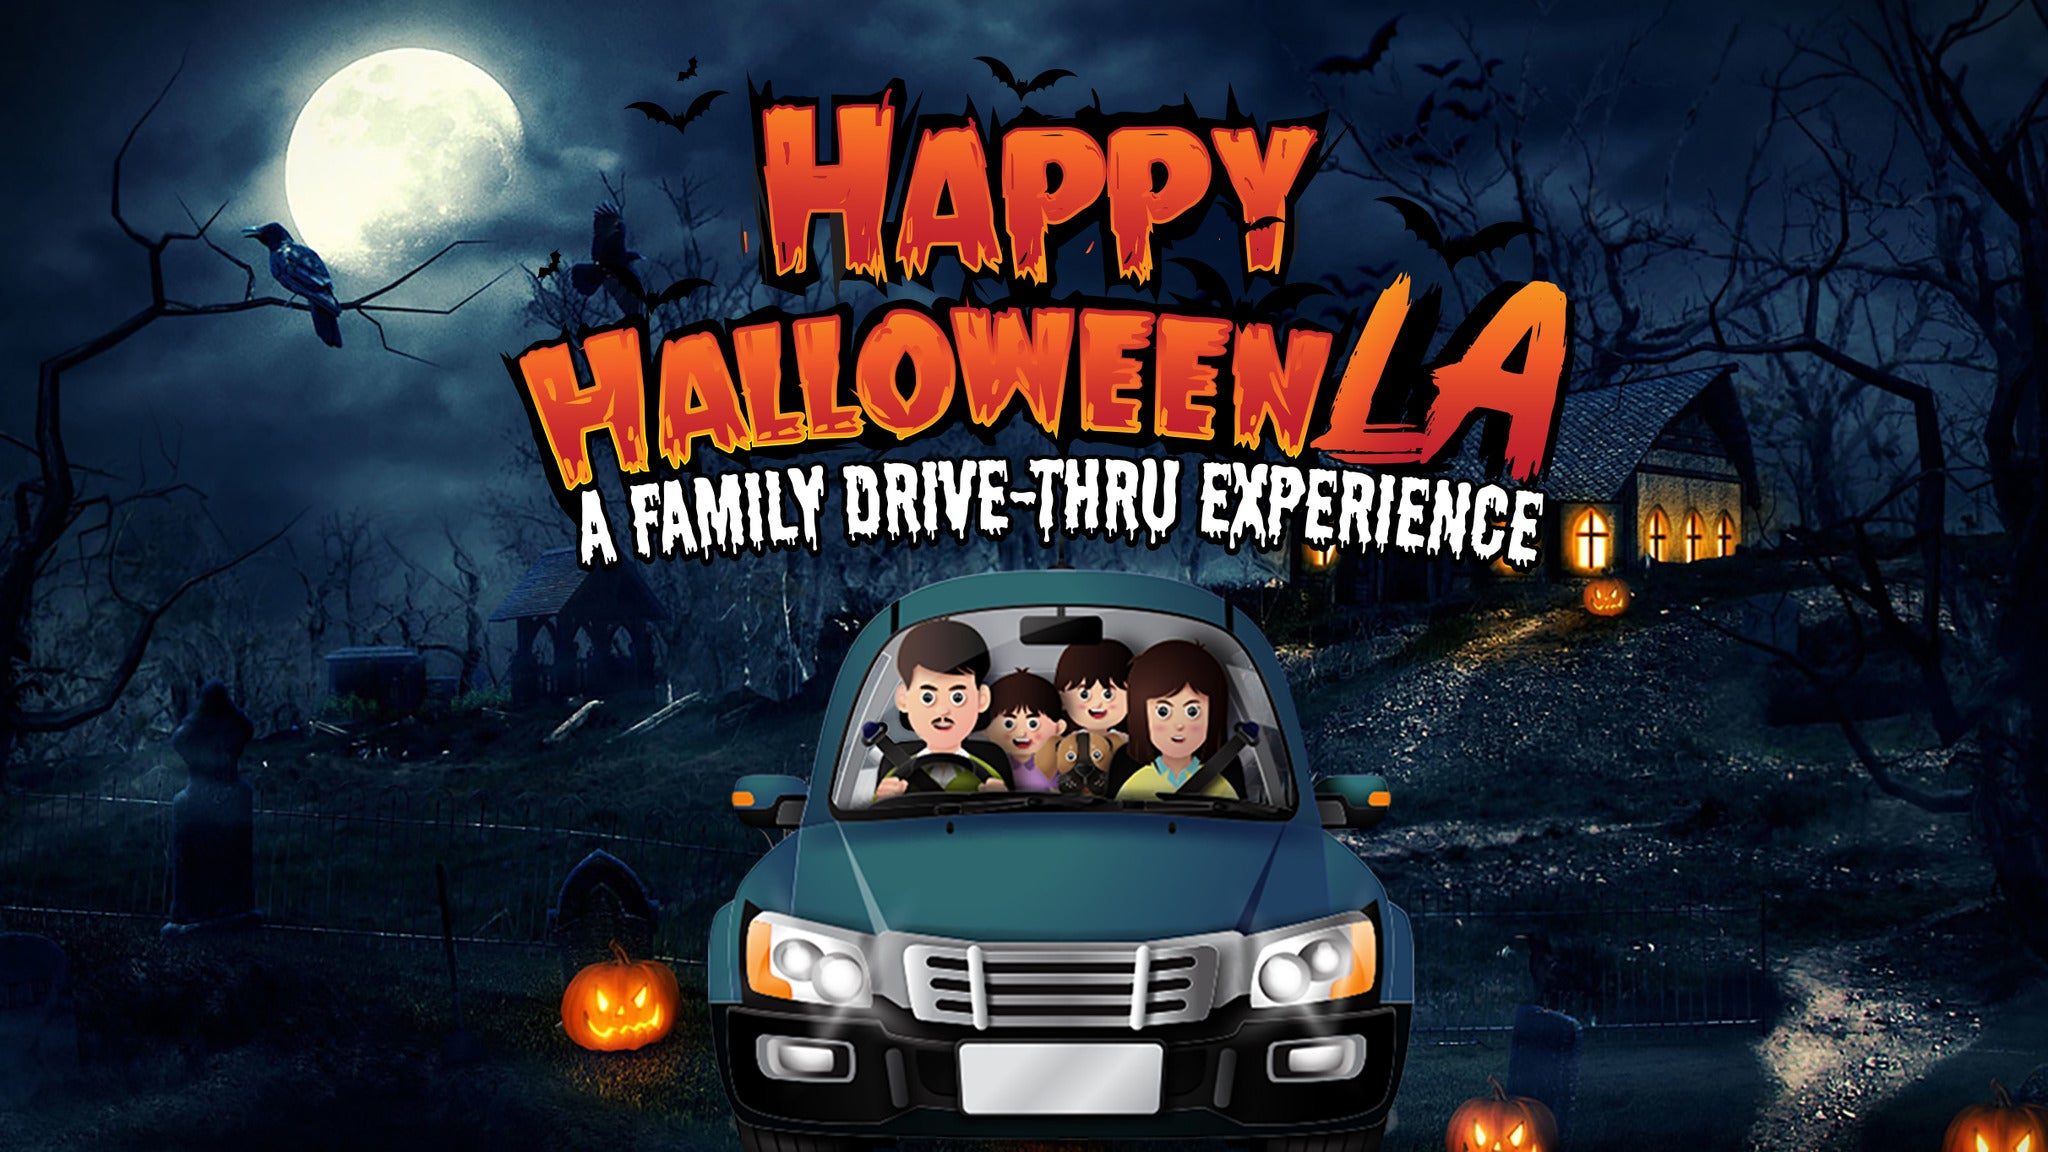 Main image for event titled Happy Halloween LA- A Drive-Thru Spooky Experience - 10/22/20